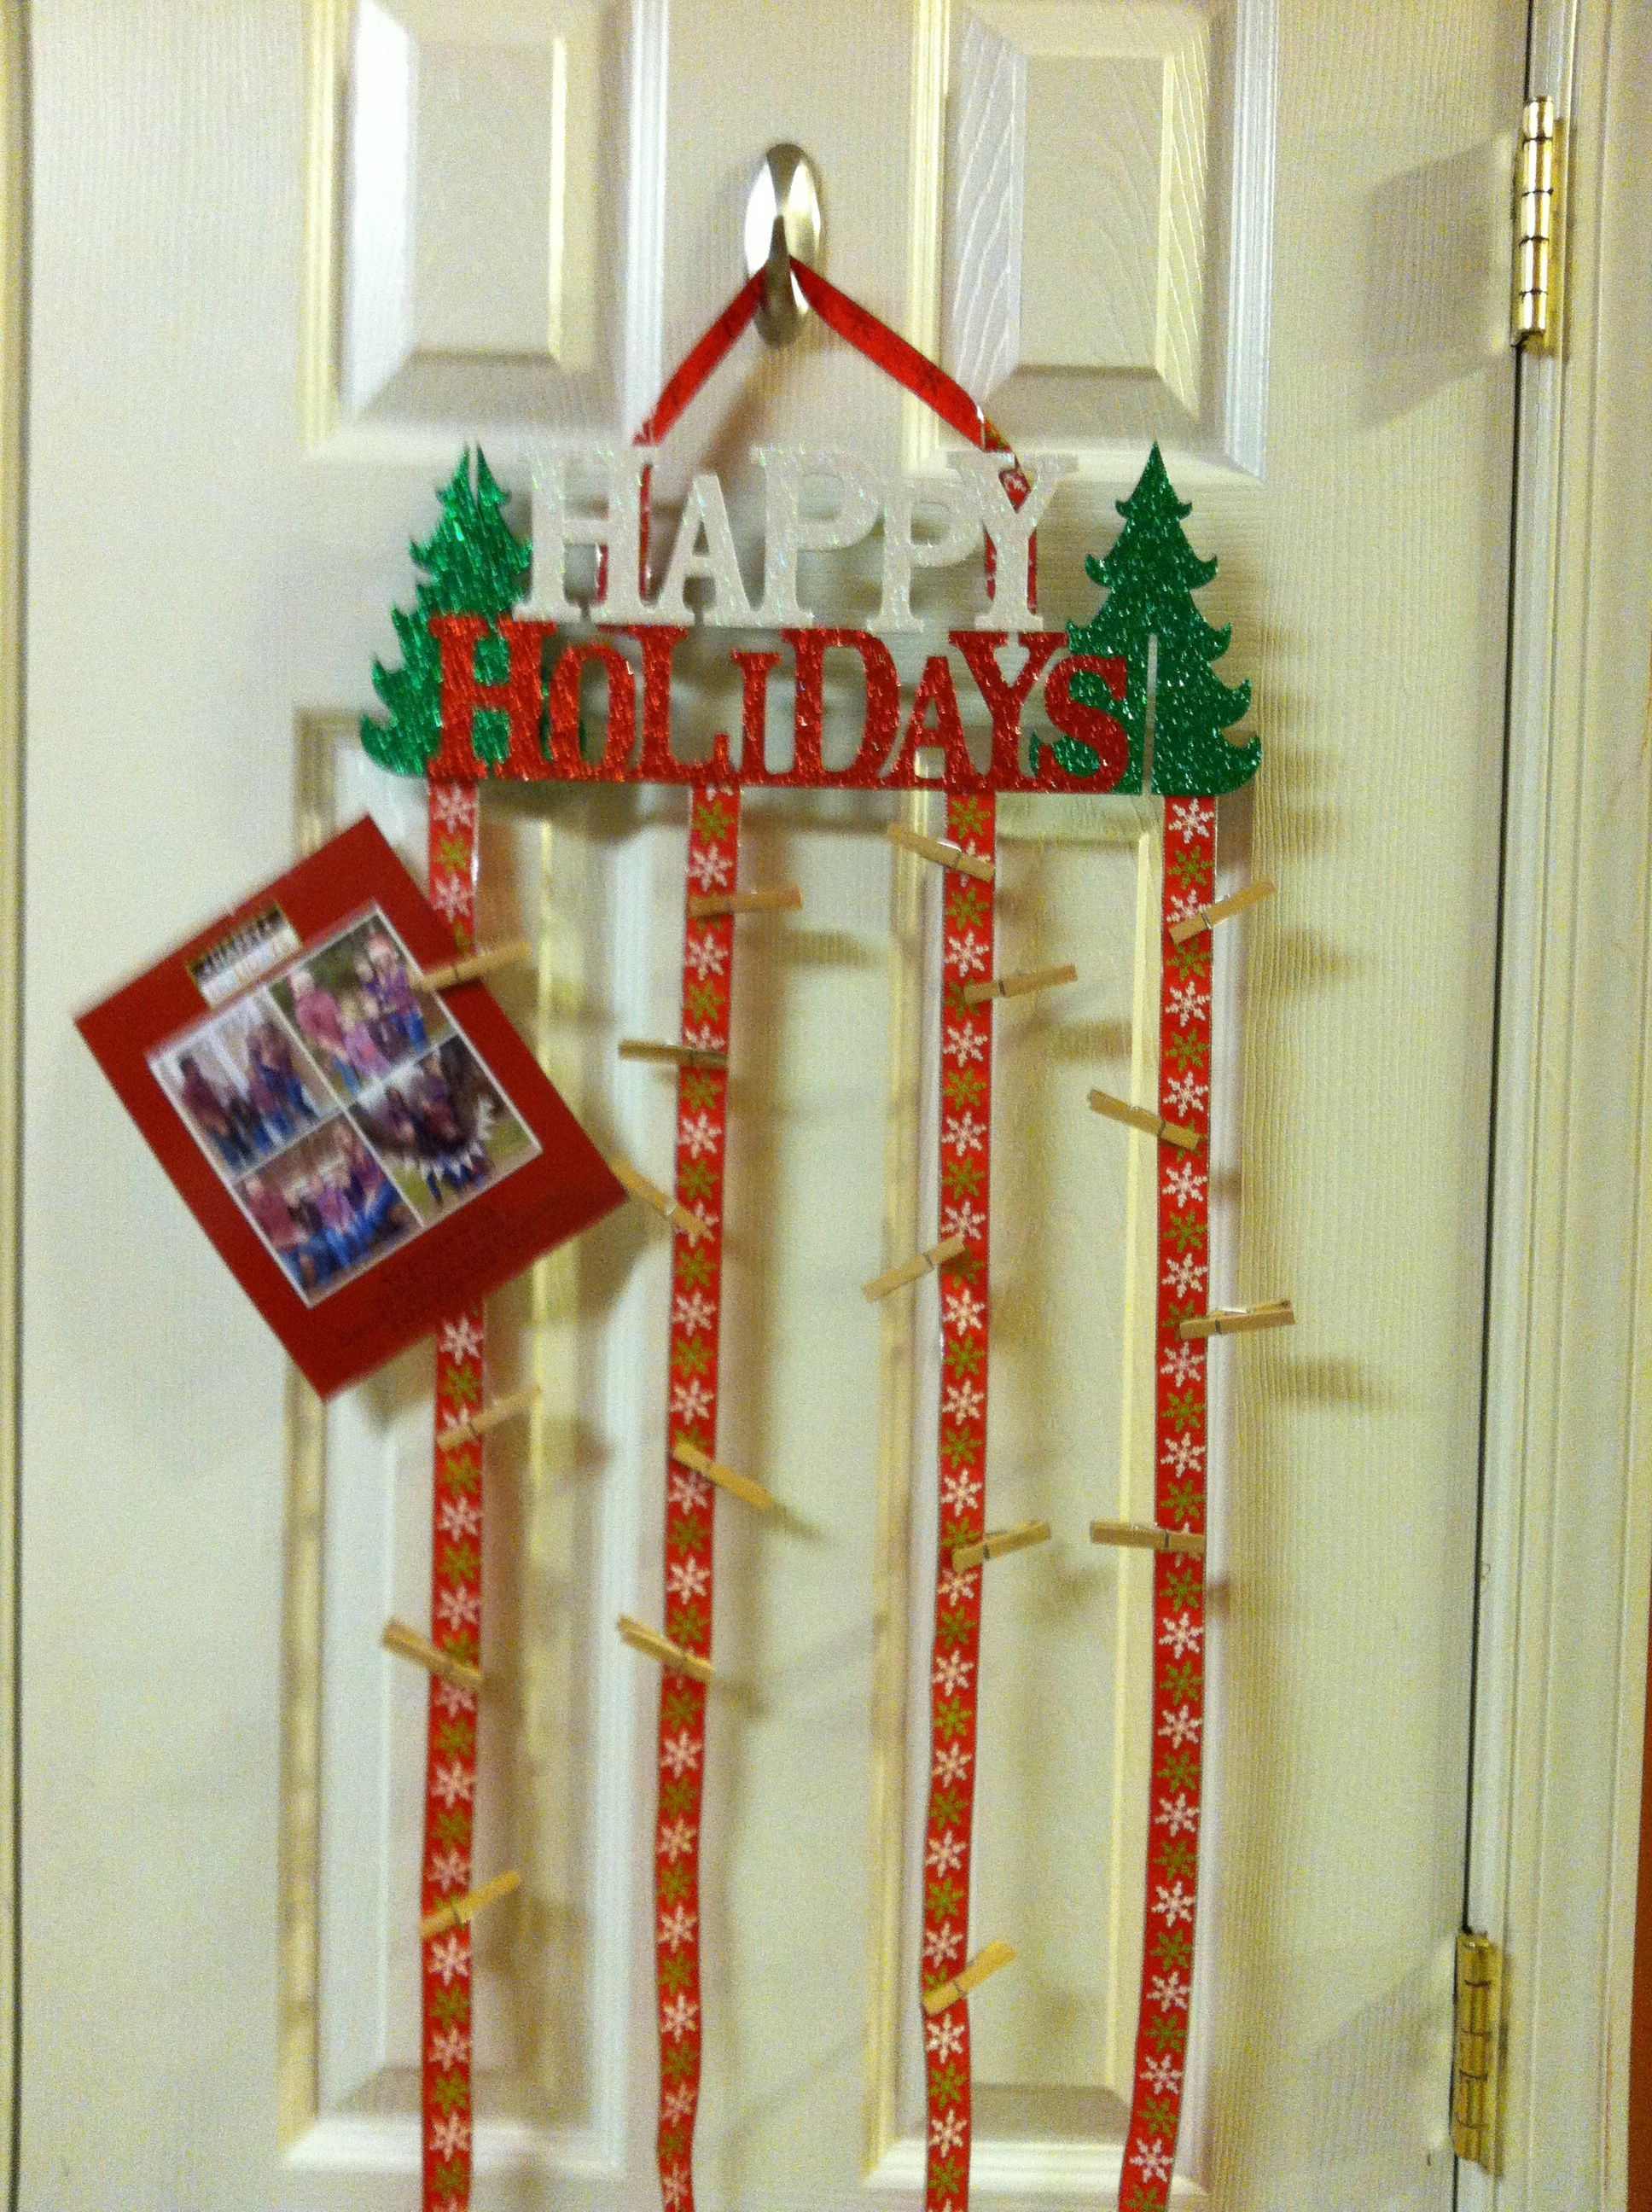 Easy Cheap Diy Christmas Card Hanger Sign From Walmart 2 Ribbon Hot Glued On And Small Cloth Christmas Card Hanger Cheap Christmas Diy Diy Christmas Cards